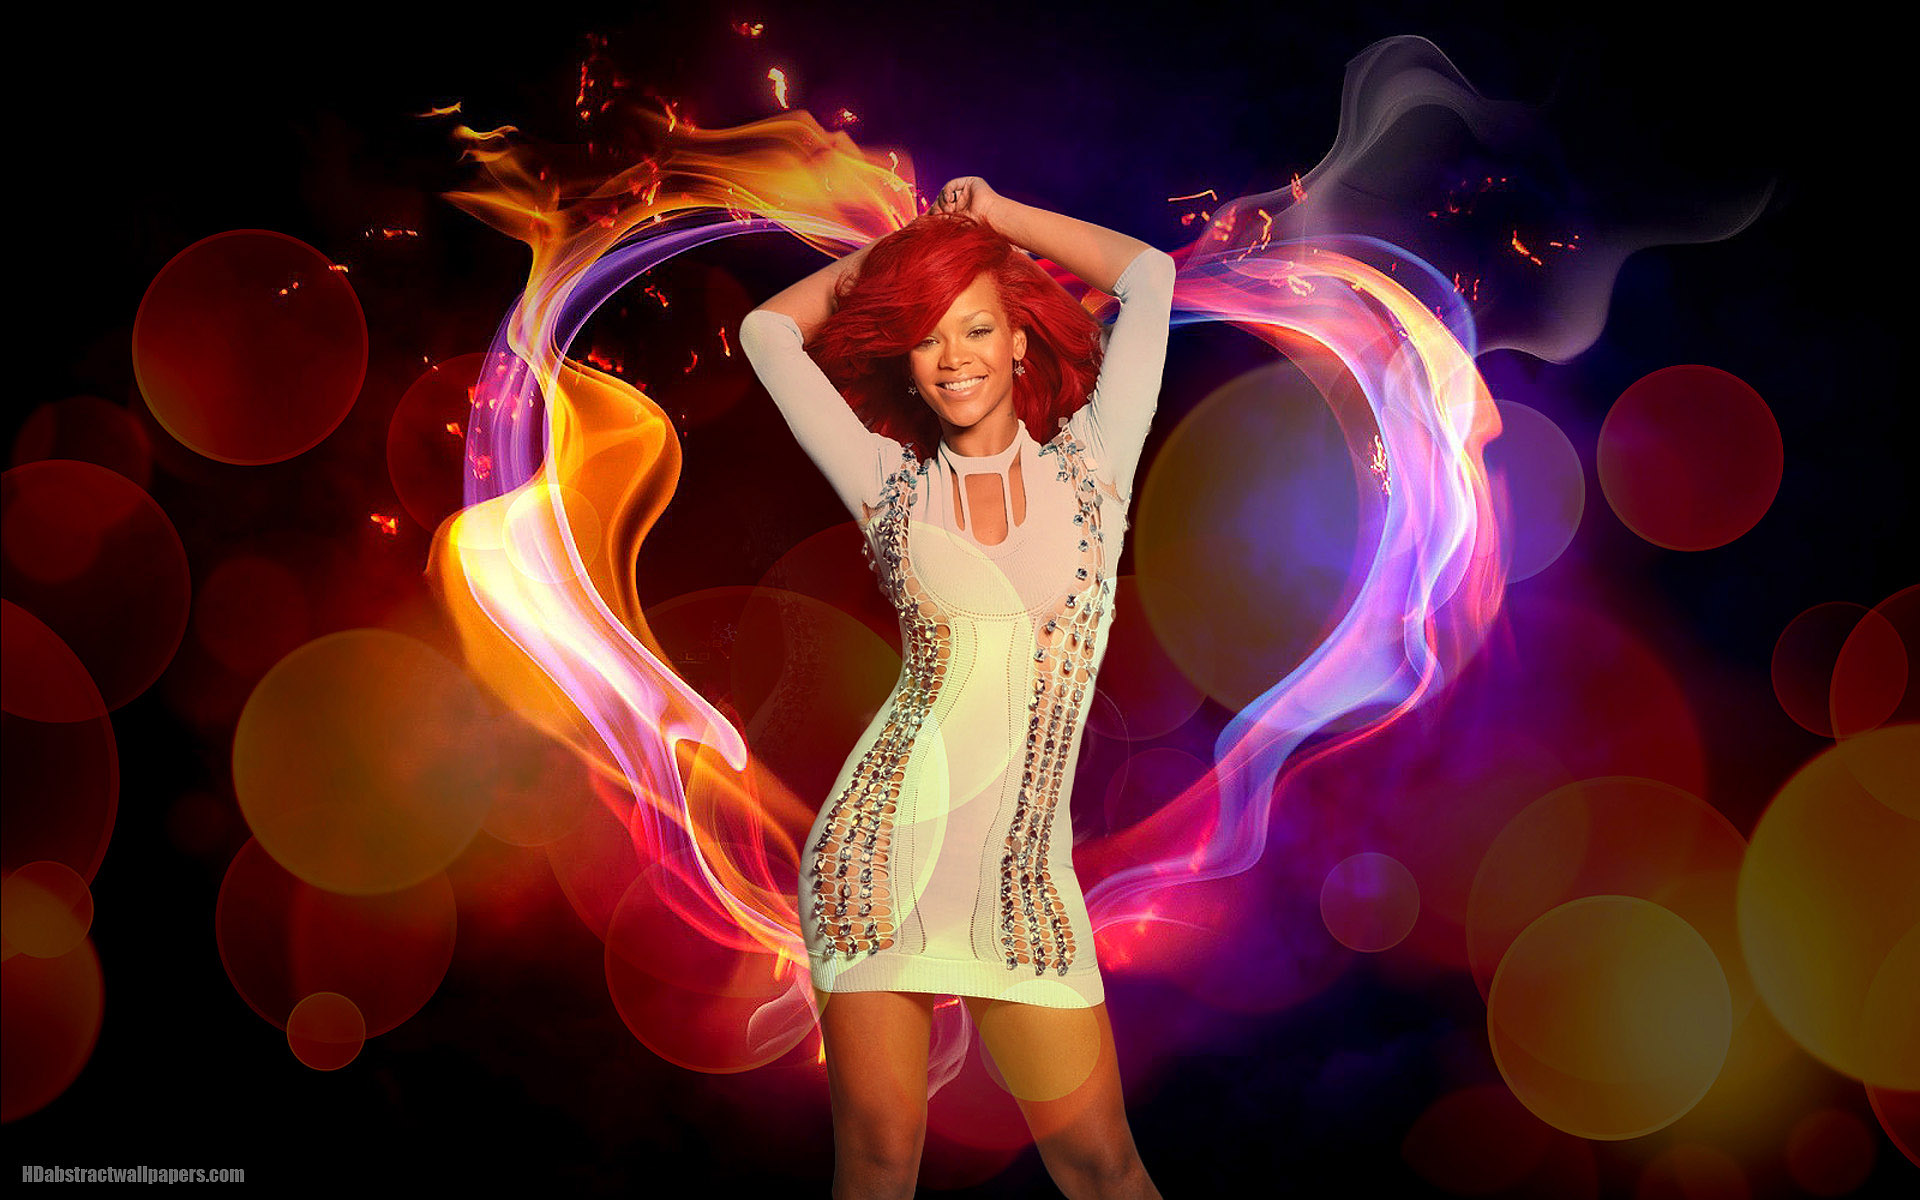 abstract rihanna wallpaper with love heart of fire | hd abstract